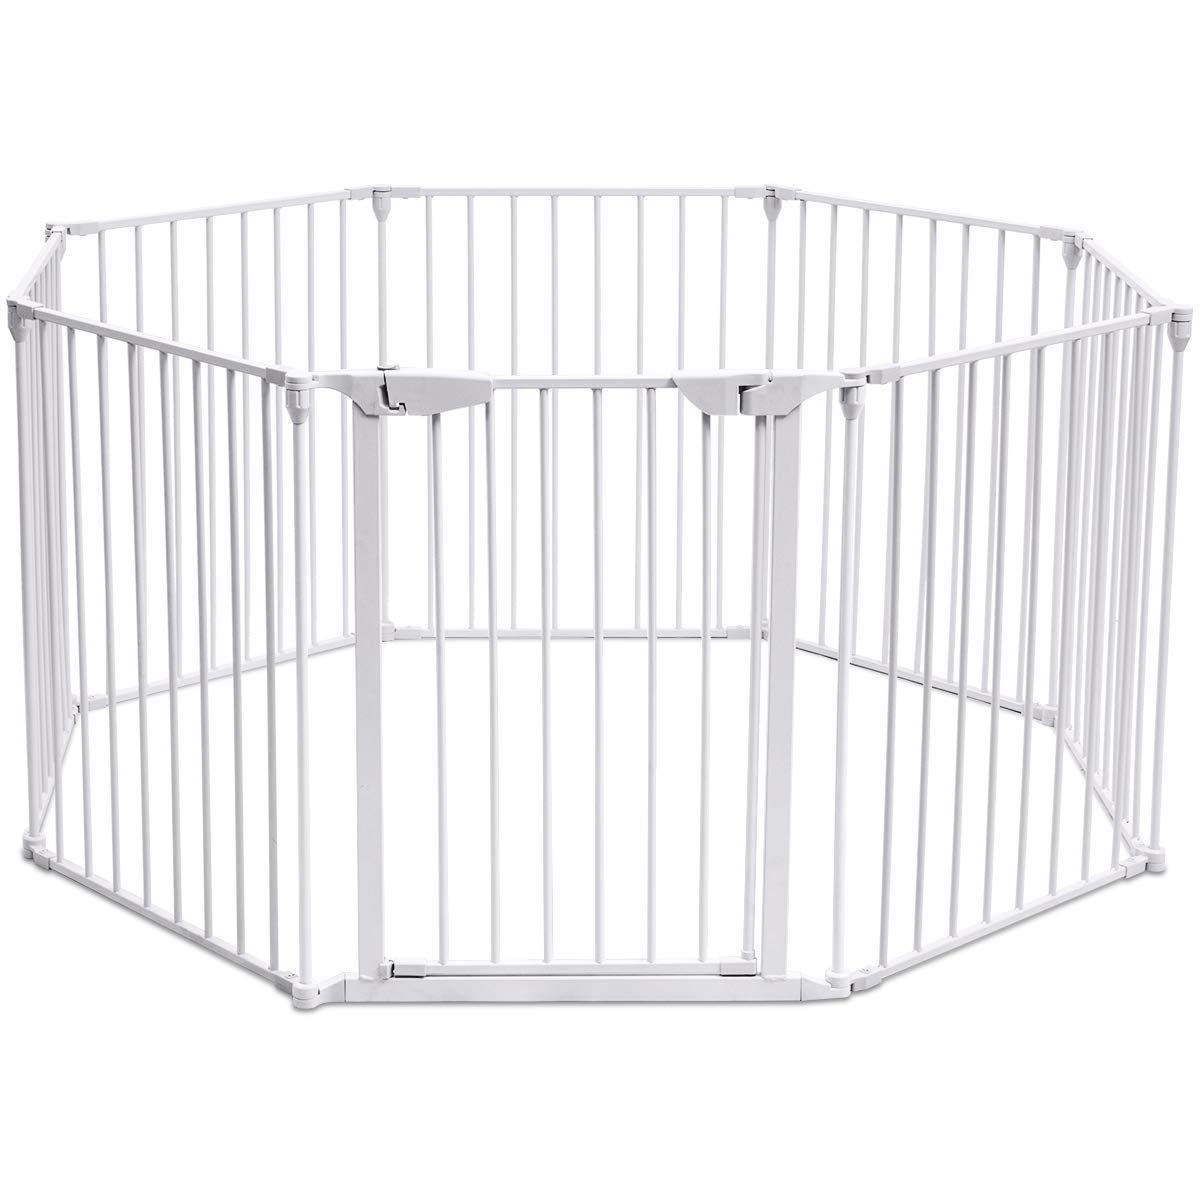 Honey Joy Baby Safety Gate 3in1 Fireplace Fence Wide Barrier Gate With Walkthrough Door In Two Directions Wallm Baby Gate With Door Baby Safety Gate Baby Gates